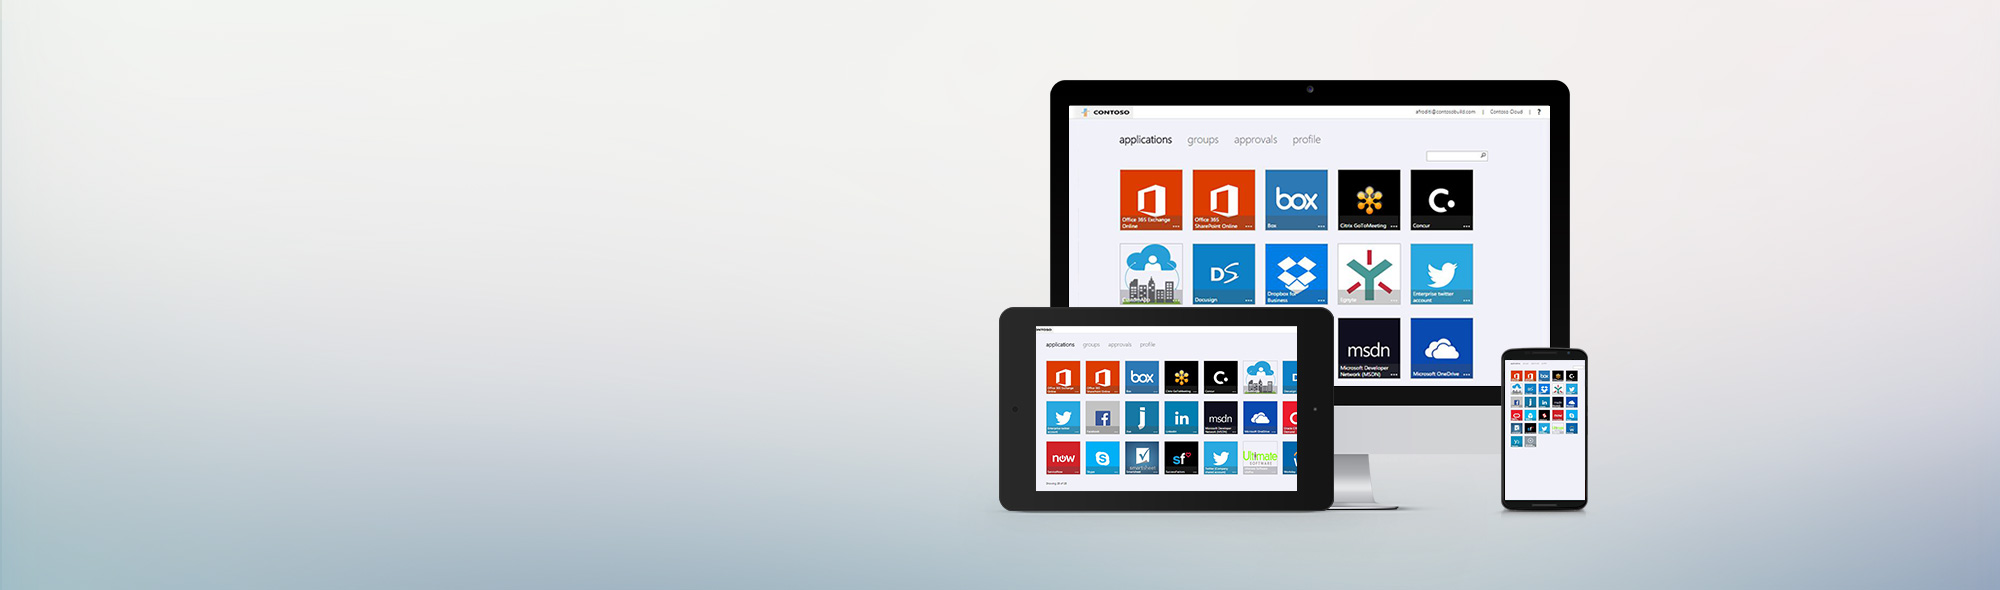 Desktop, tablet and smartphone with app icons.